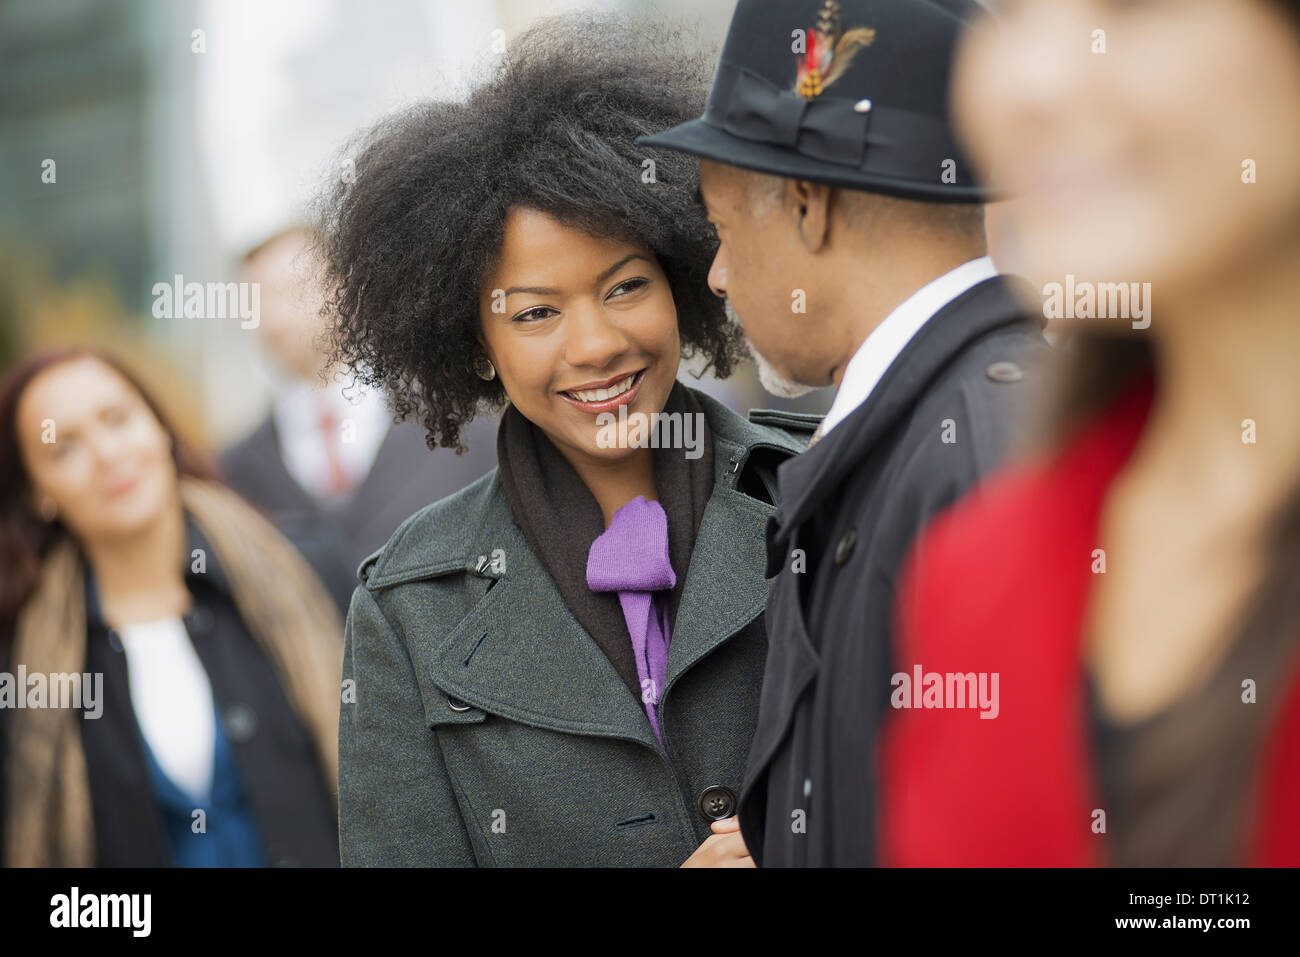 A group of people on the go on the street A man and woman standing close together - Stock Image